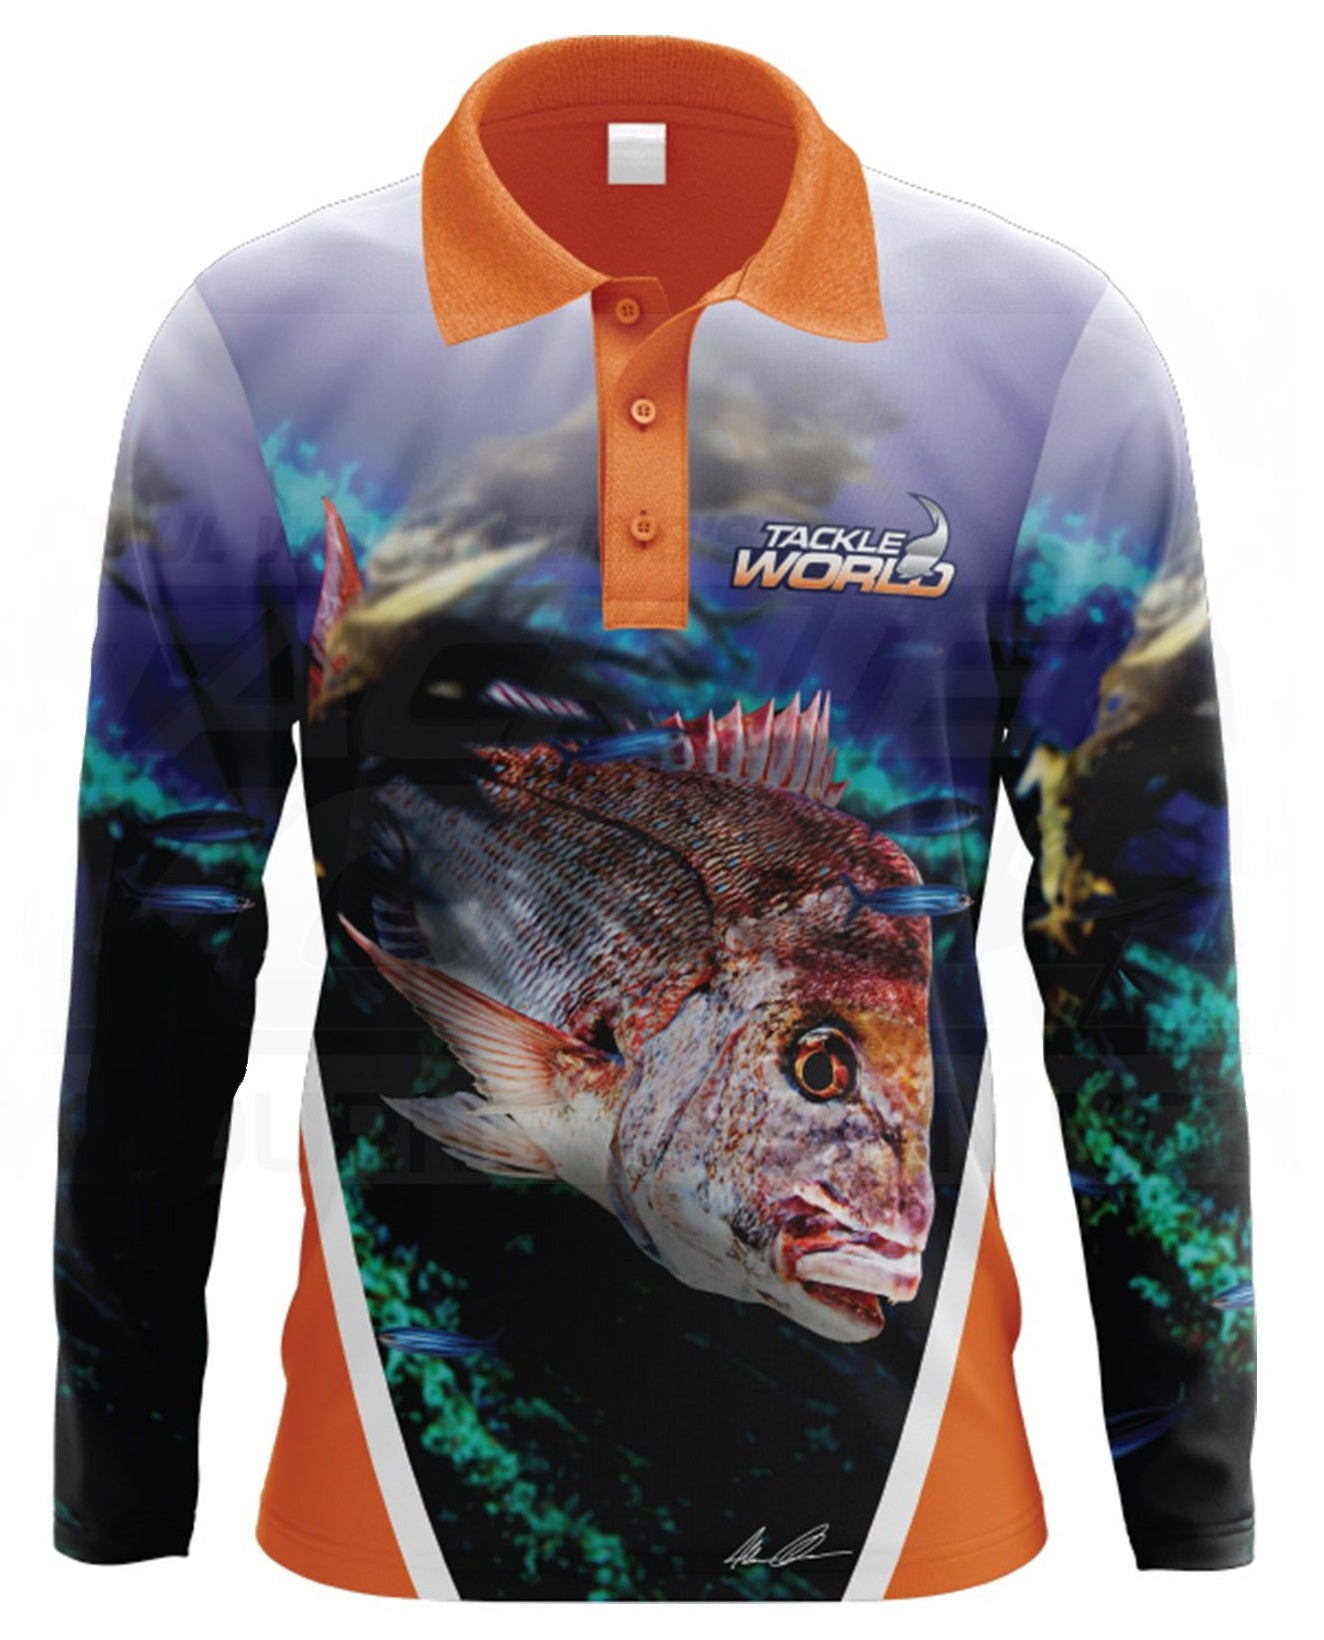 Tackle World Snapper Kids Long Sleeve Fishing Shirt Jersey